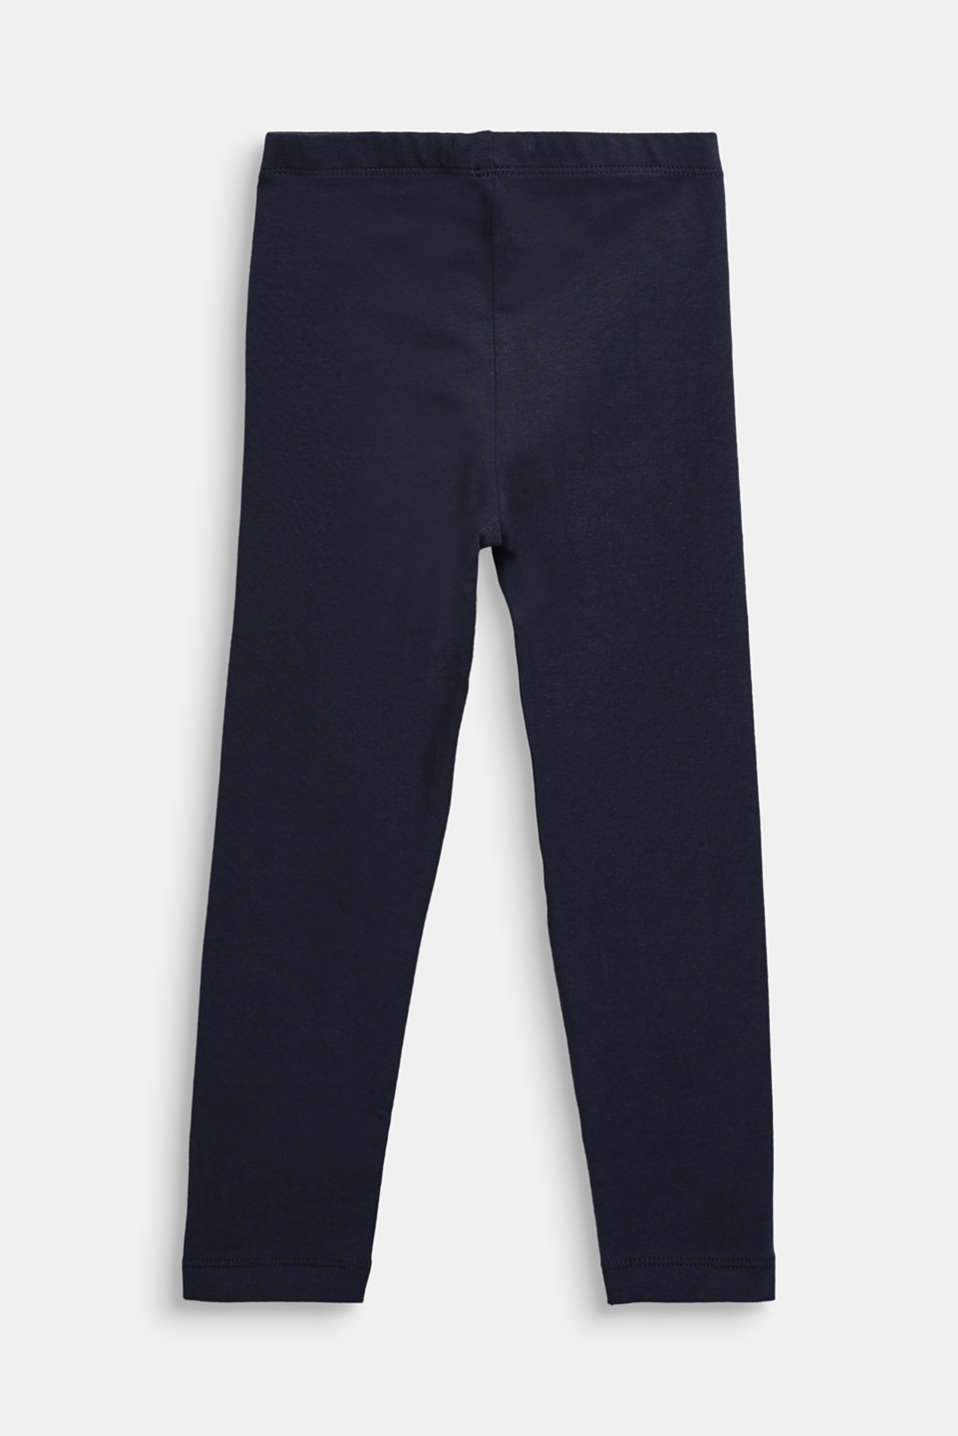 Stretch cotton leggings, NAVY BLUE, detail image number 1